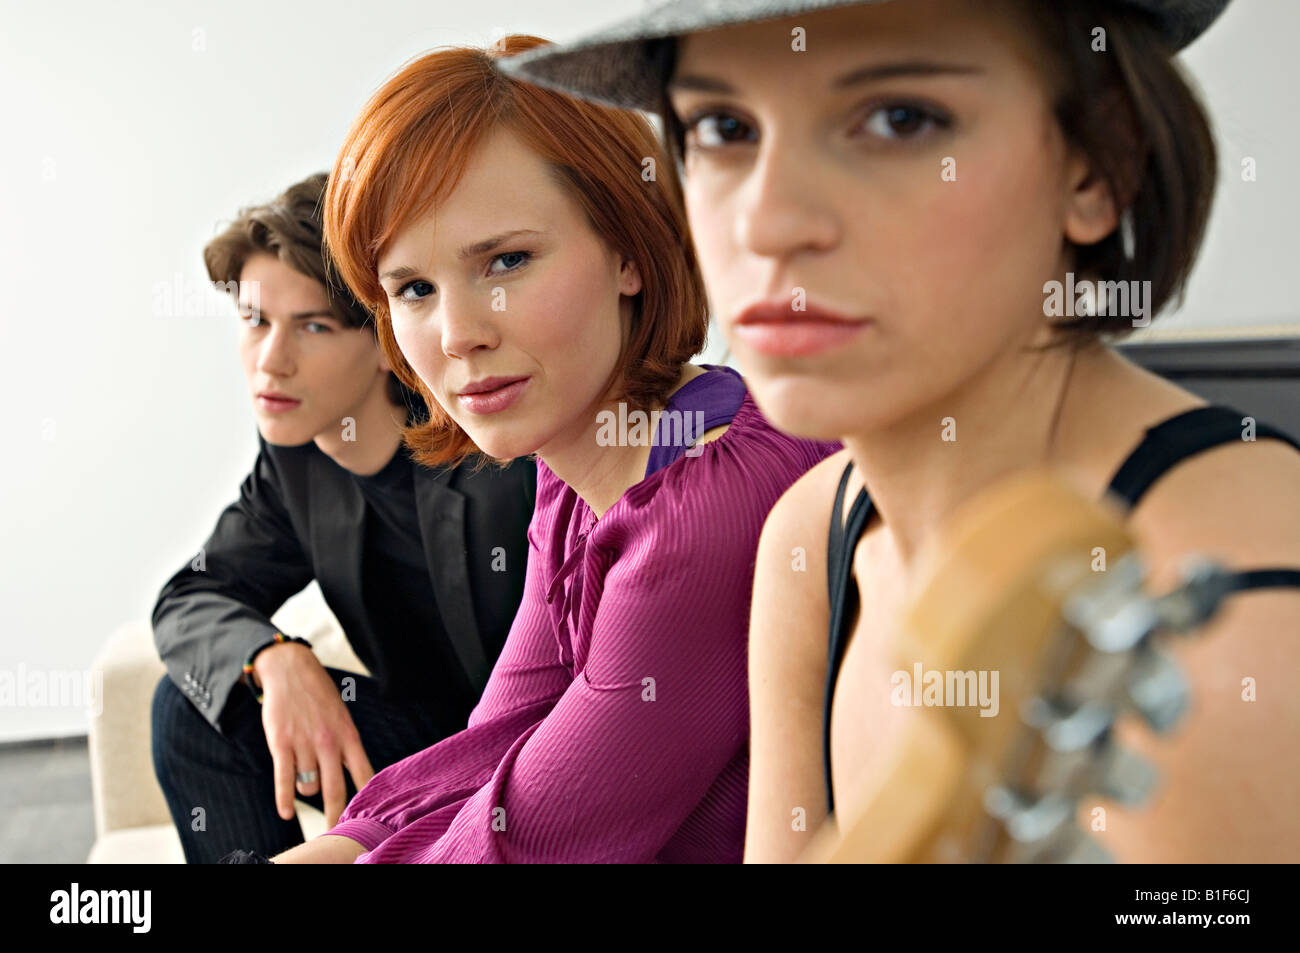 Portrait of two young women with a teenage boy - Stock Image